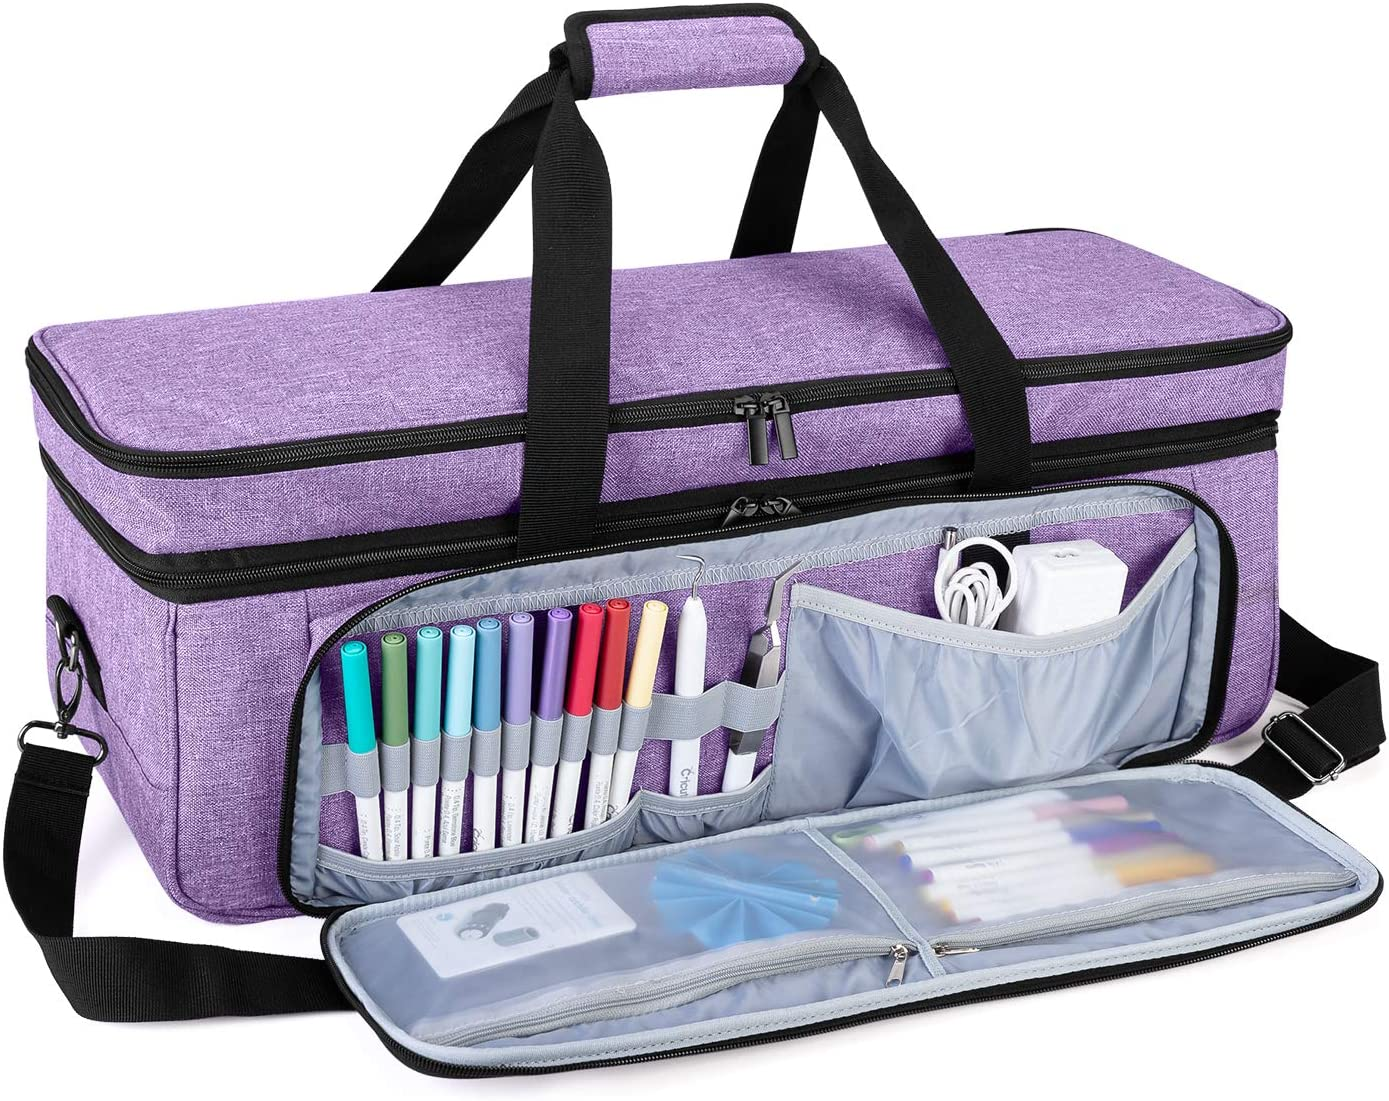 Luxja Double-Layer Carrying Case Compatible with Cricut Die-Cut Machine Black 2 Layers Bag Compatible with Cricut Explore Air Patent Pending and Maker Air 2